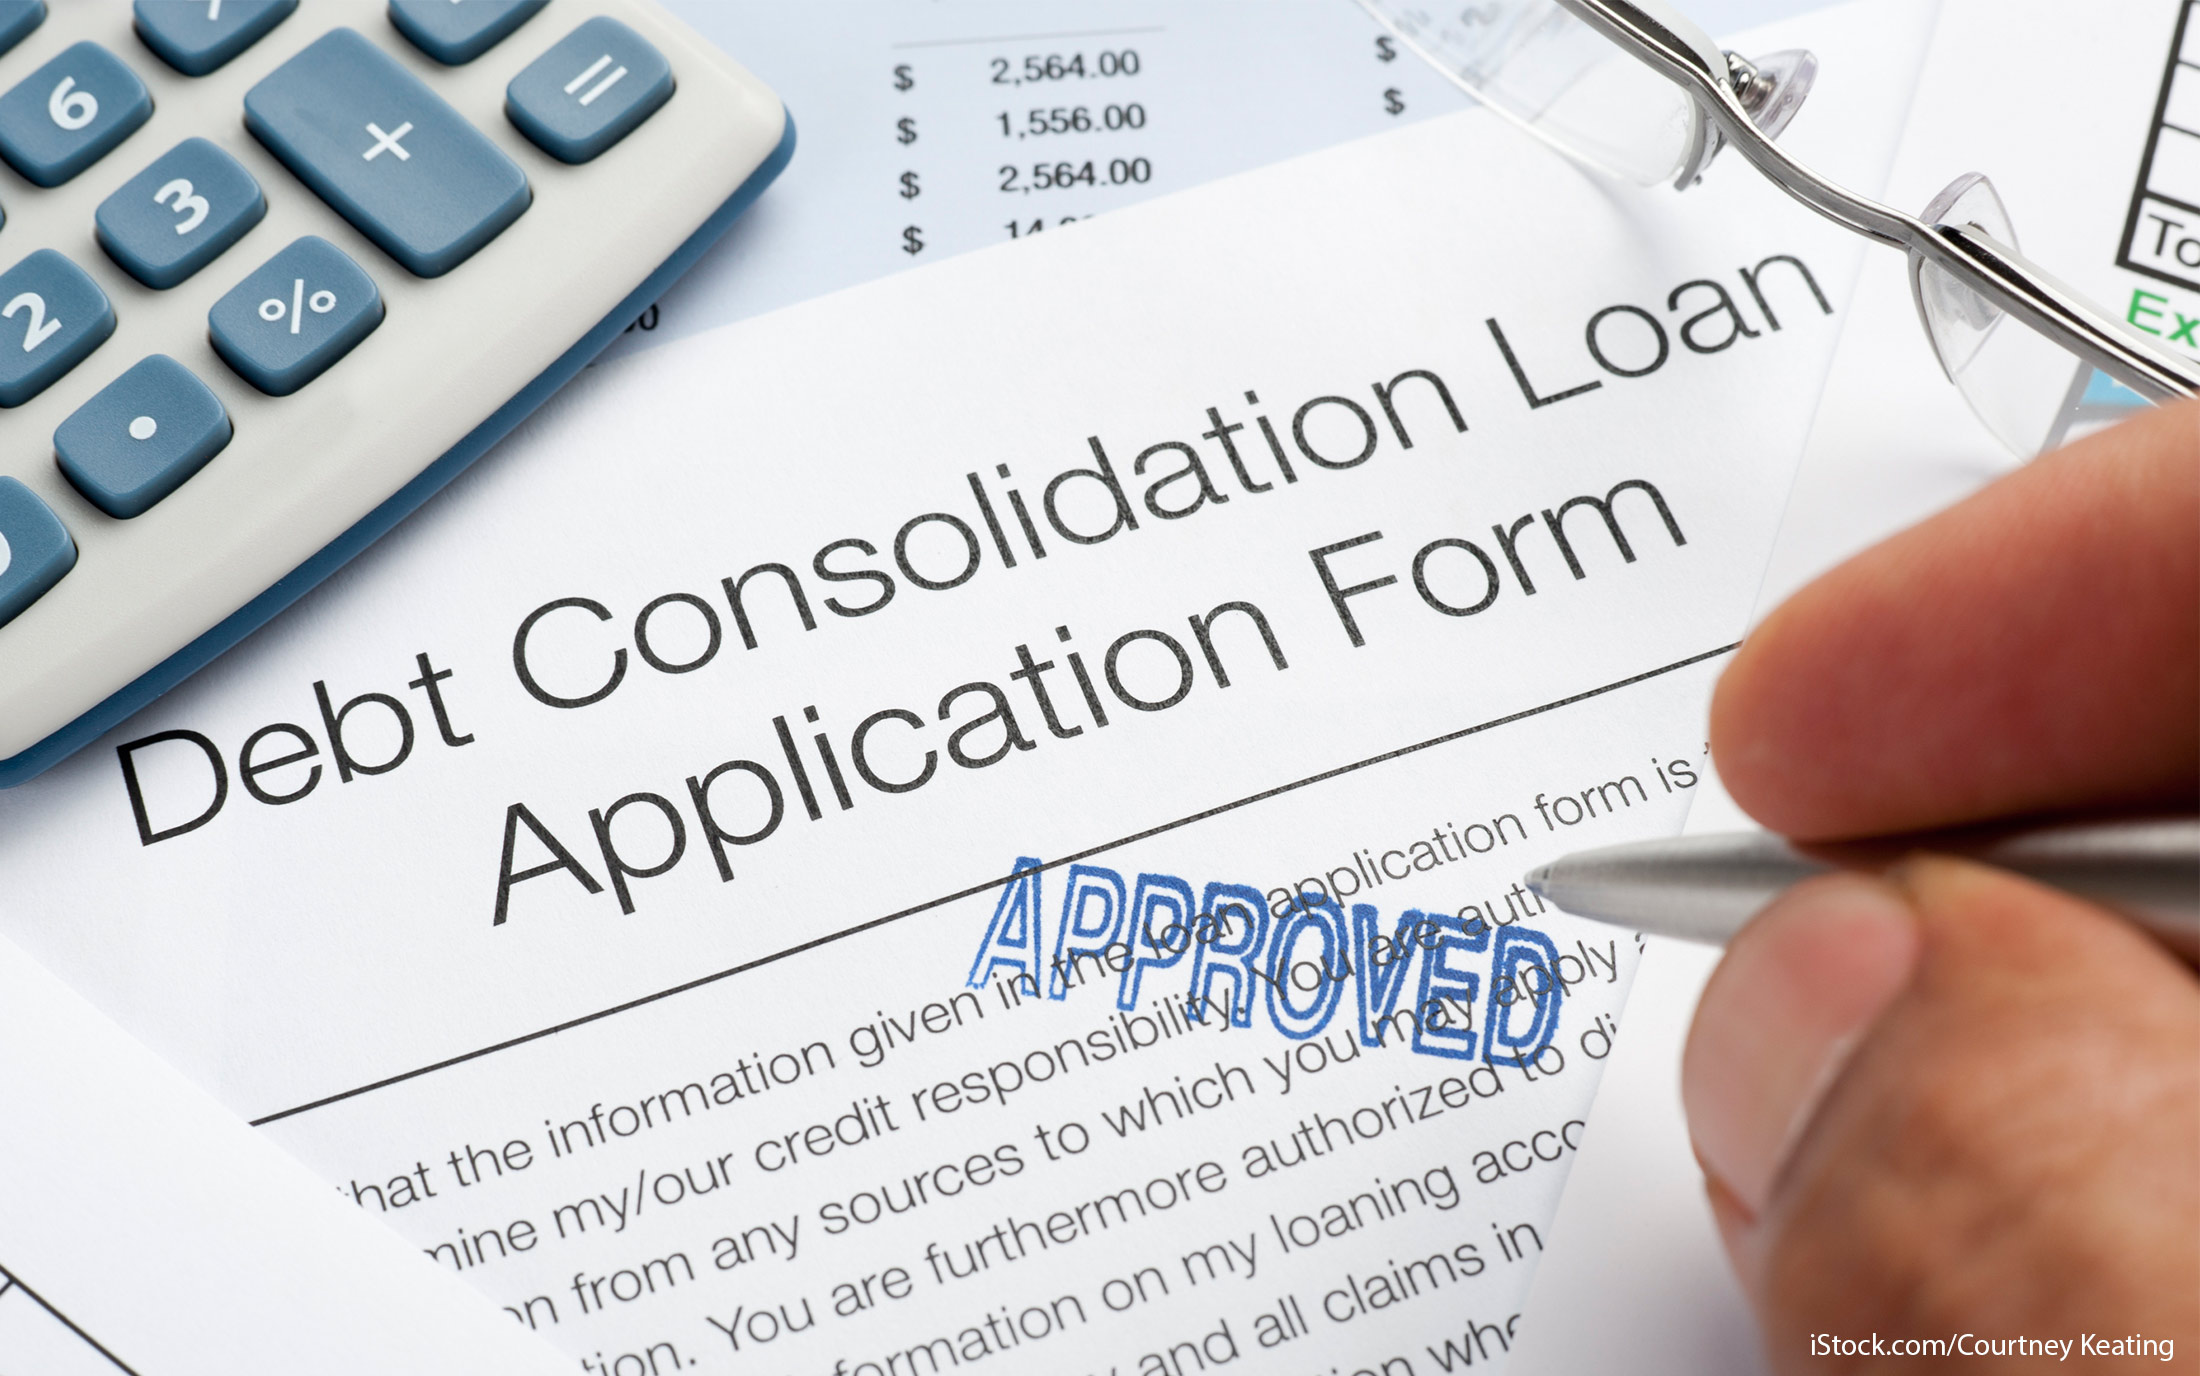 Loan Consolidation - How to Get Your Debt Reduced Through Consolidation